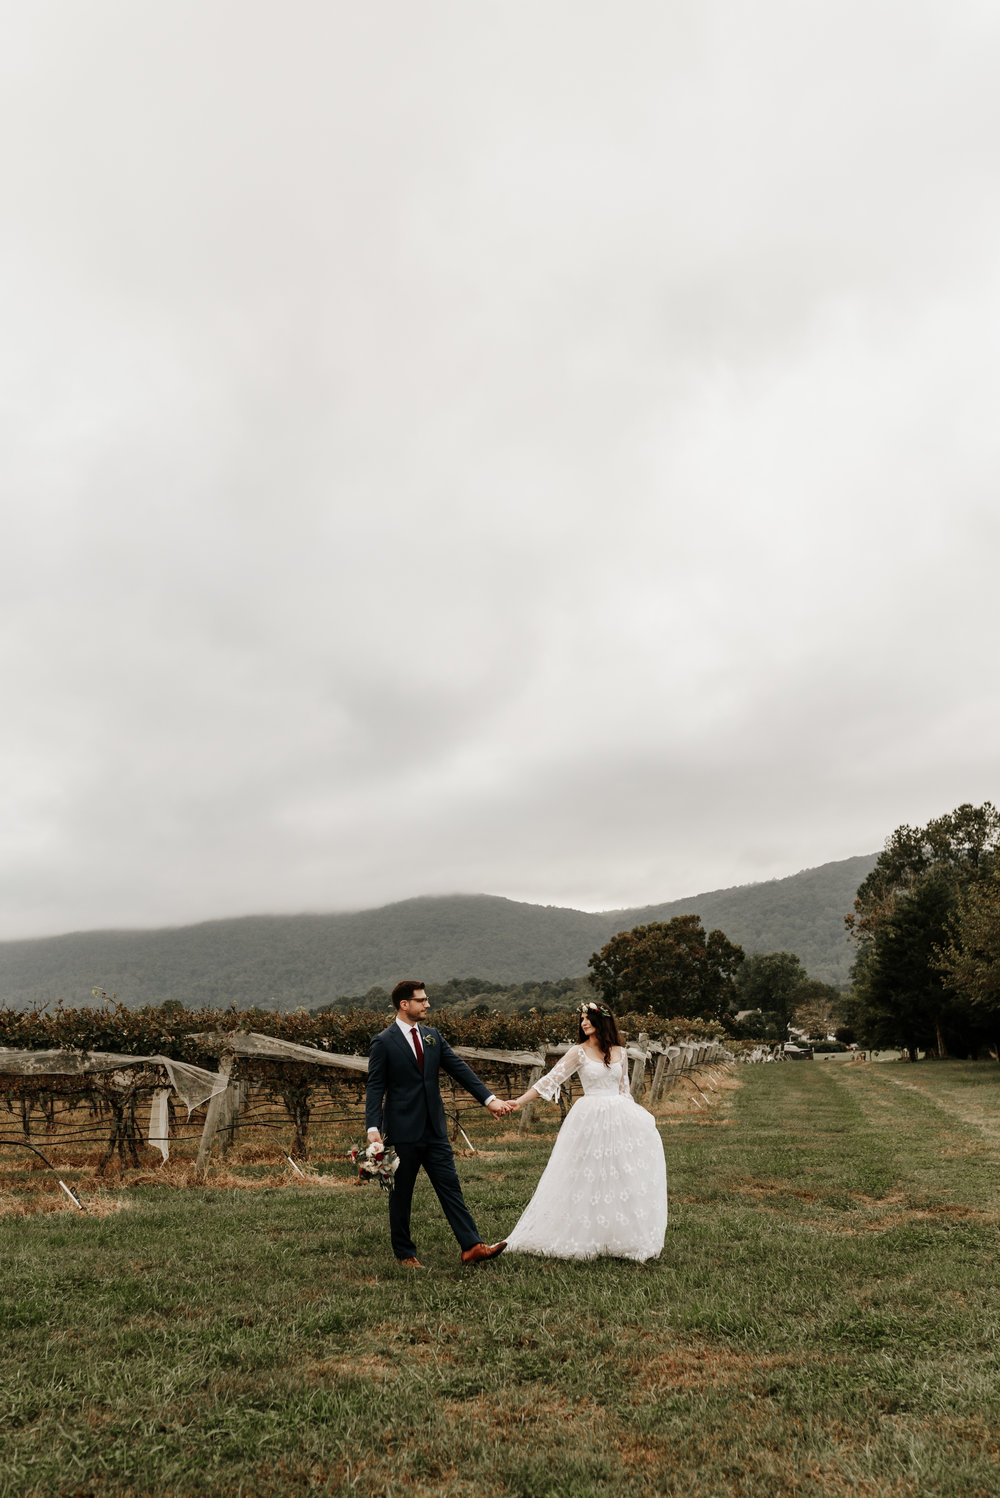 Veritas-Vineyards-and-Winery-Wedding-Photography-Afton-Virginia-Yasmin-Seth-Photography-by-V-9535.jpg